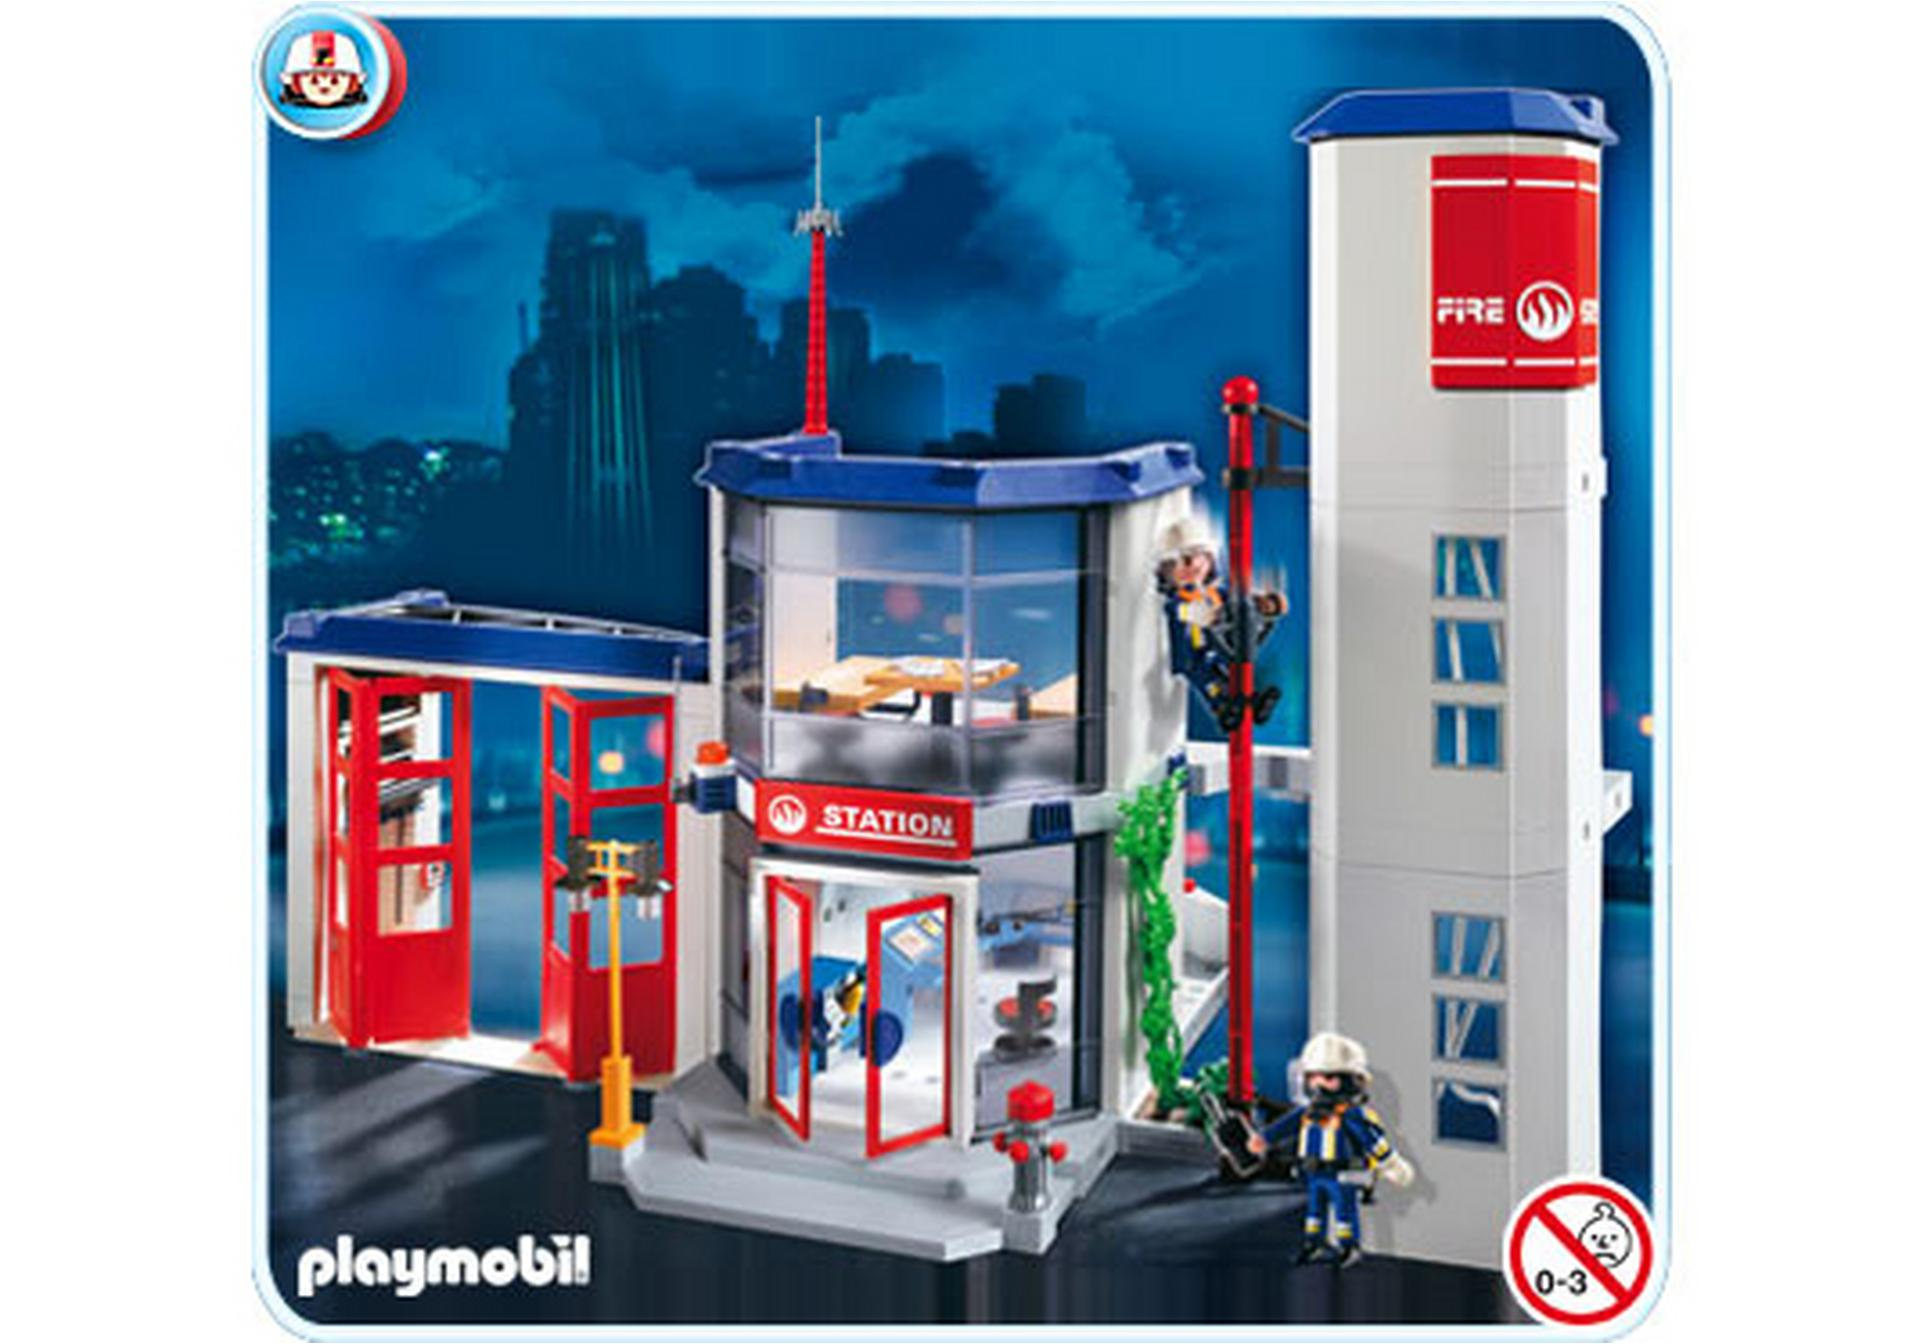 caserne de pompiers 4819 a playmobil france. Black Bedroom Furniture Sets. Home Design Ideas